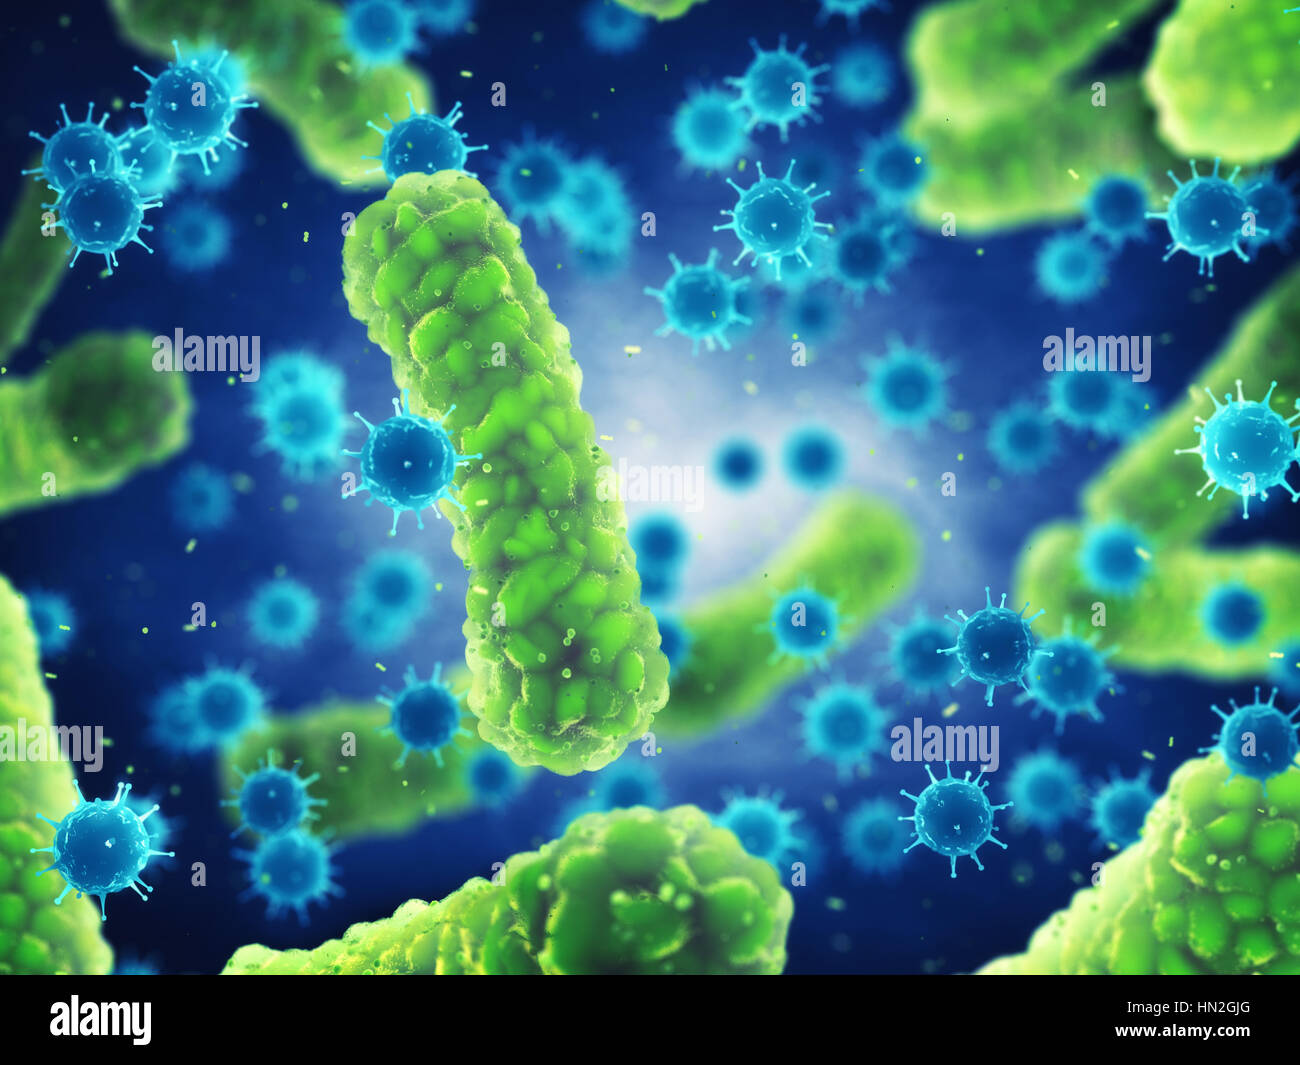 Pathogenic Bacteria And Viruses Microscopic Germs That